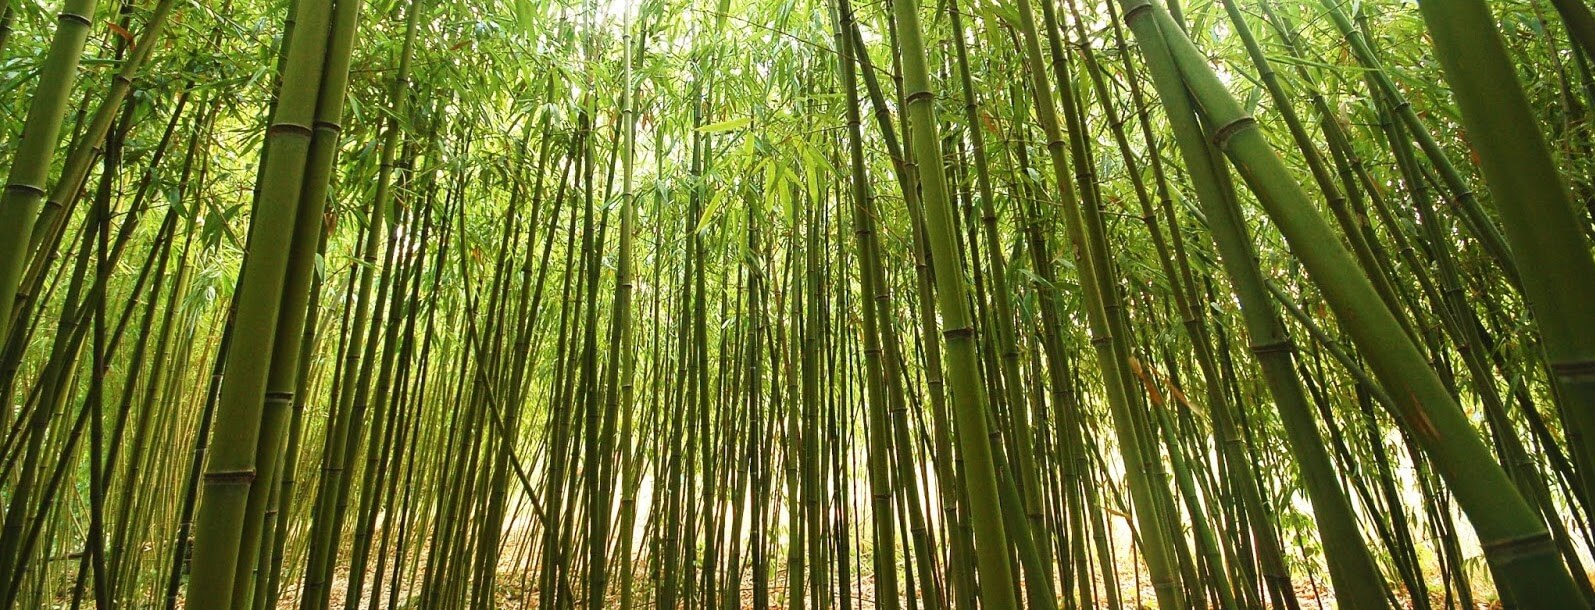 National Conference on Opportunities Challenges for Bamboo in India Organised